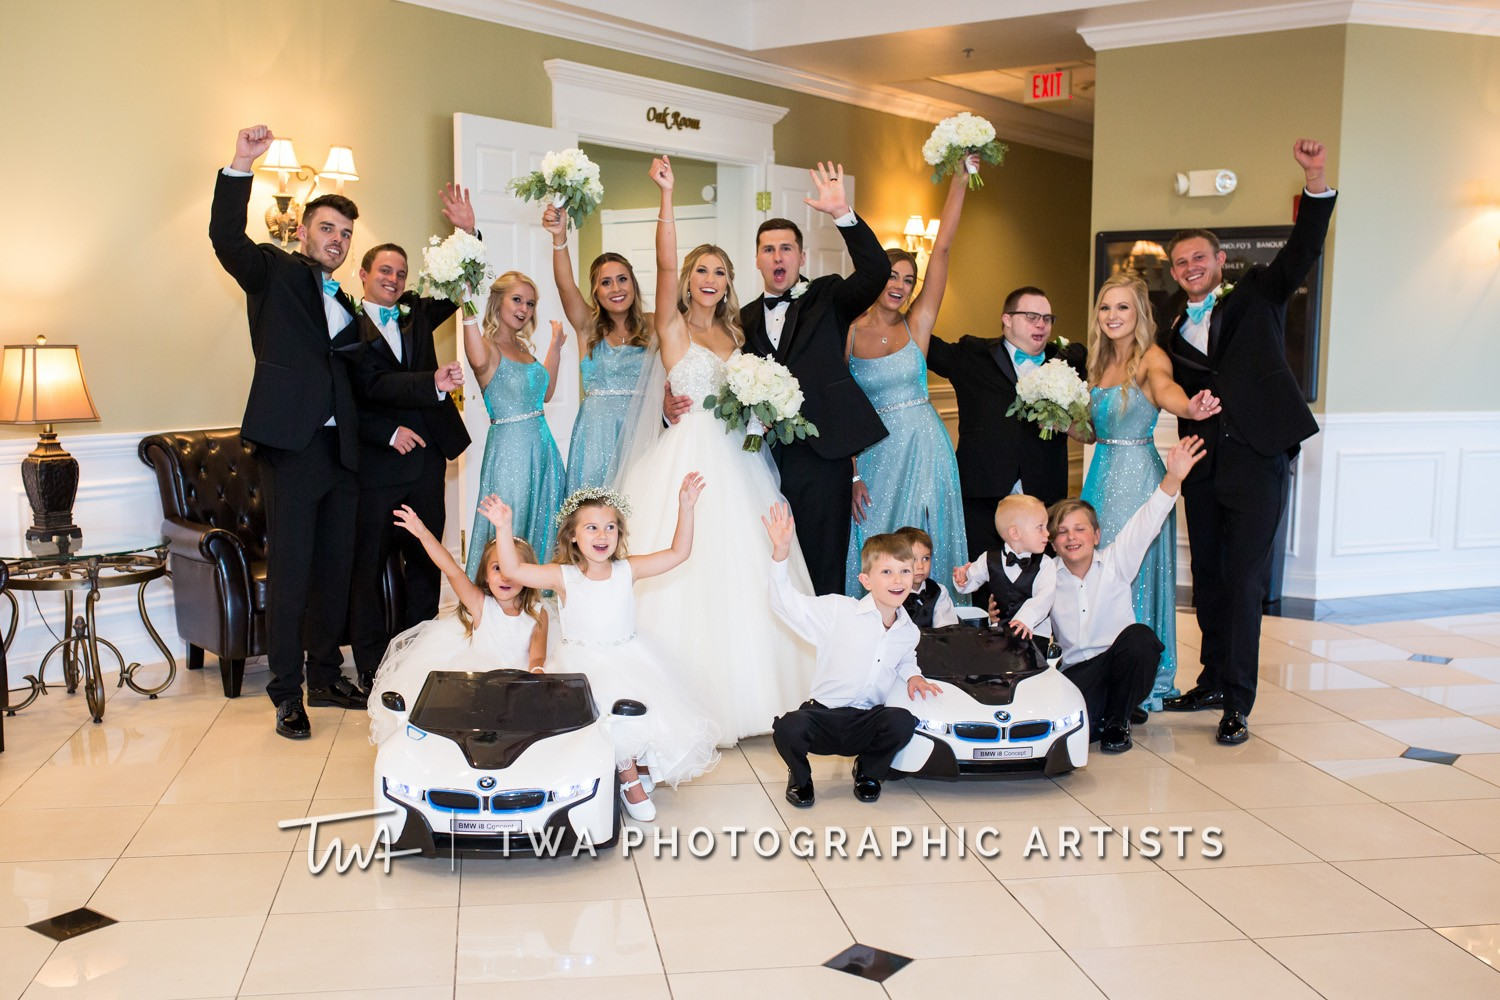 Chicago-Wedding-Photographer-TWA-Photographic-Artists-DiNolfo_s-Banquets_Augustine_Evans_MJ_WK-0904